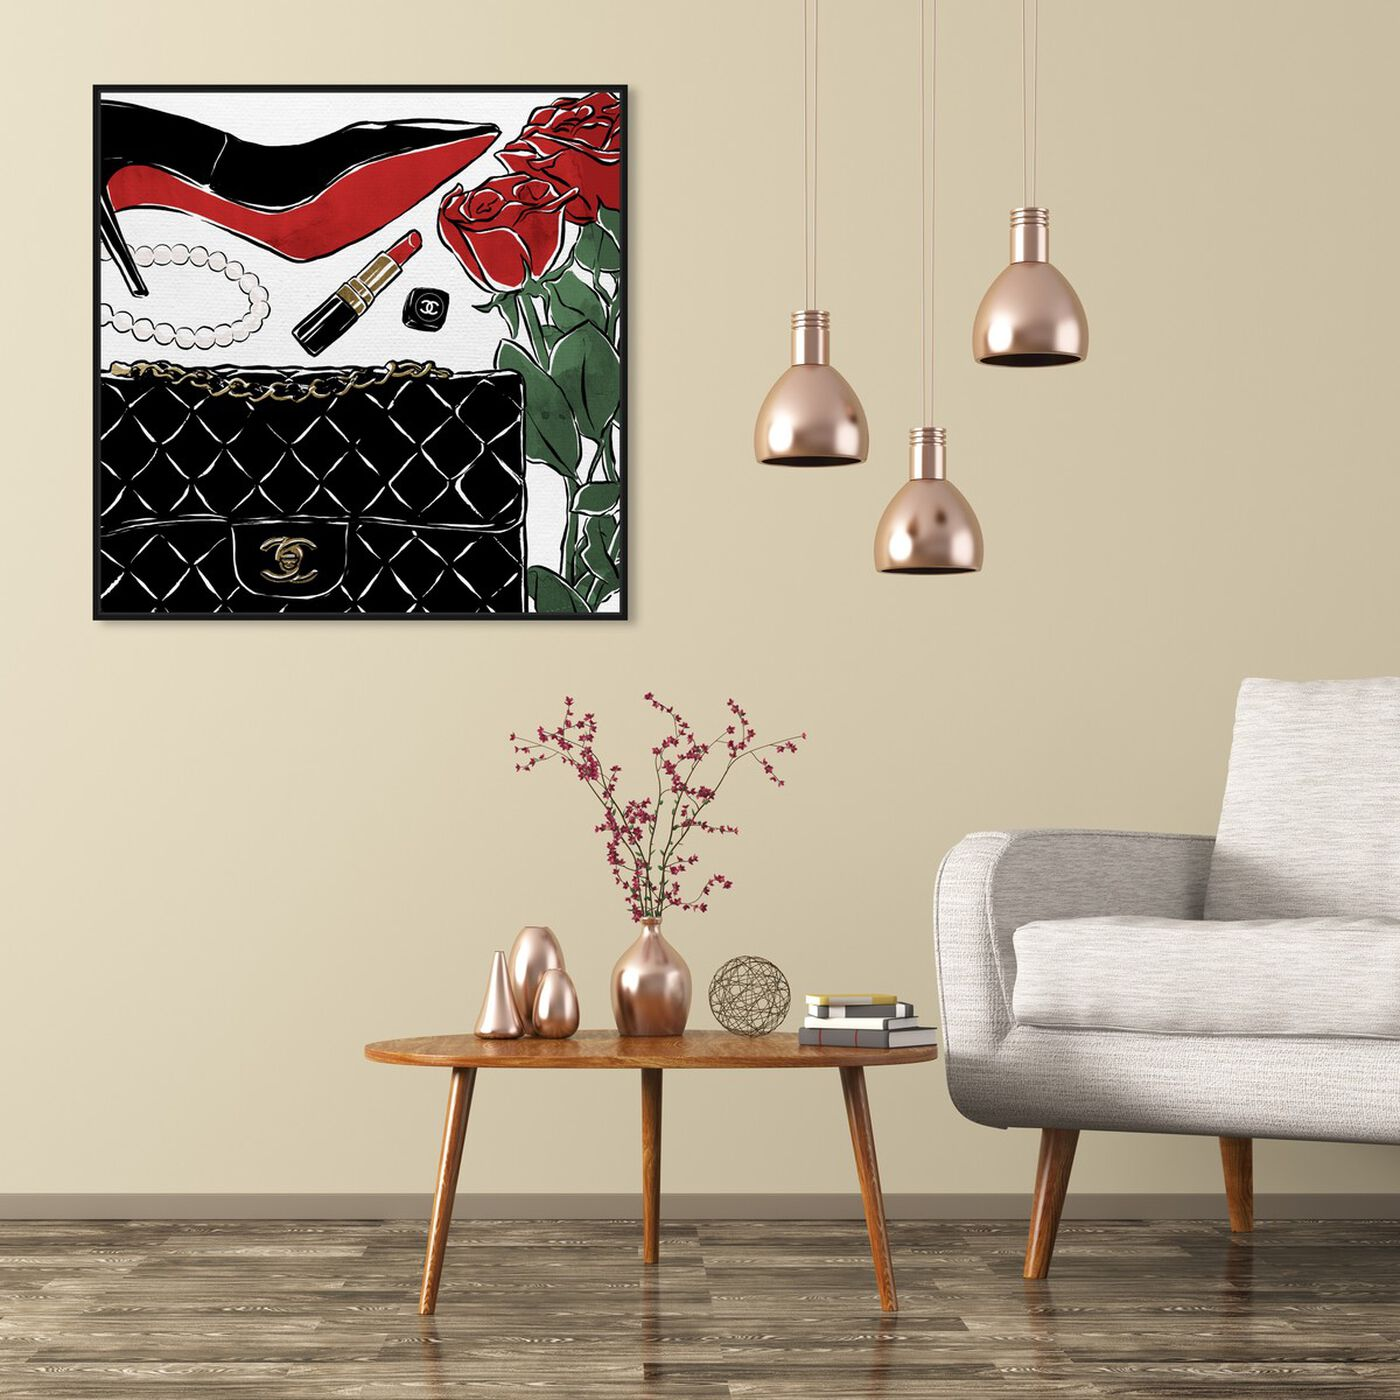 Hanging view of Red Roses and Black Purses featuring fashion and glam and shoes art.